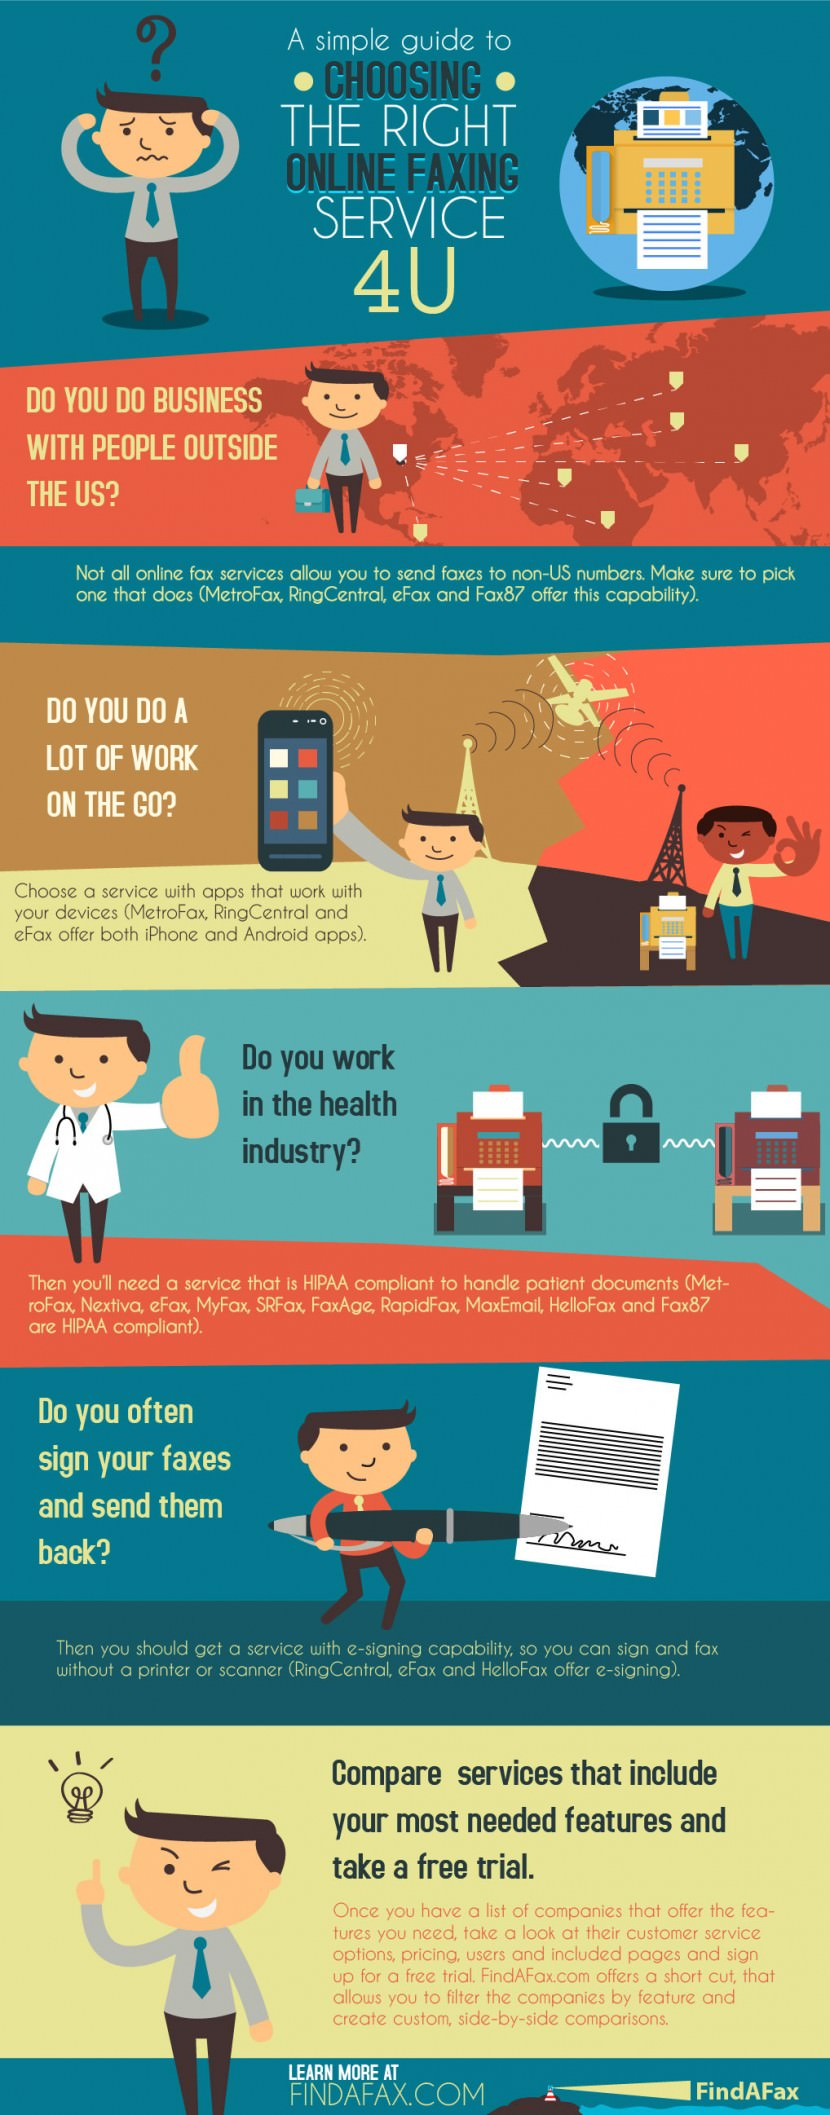 Choosing the Right Online Faxing Service Infographic